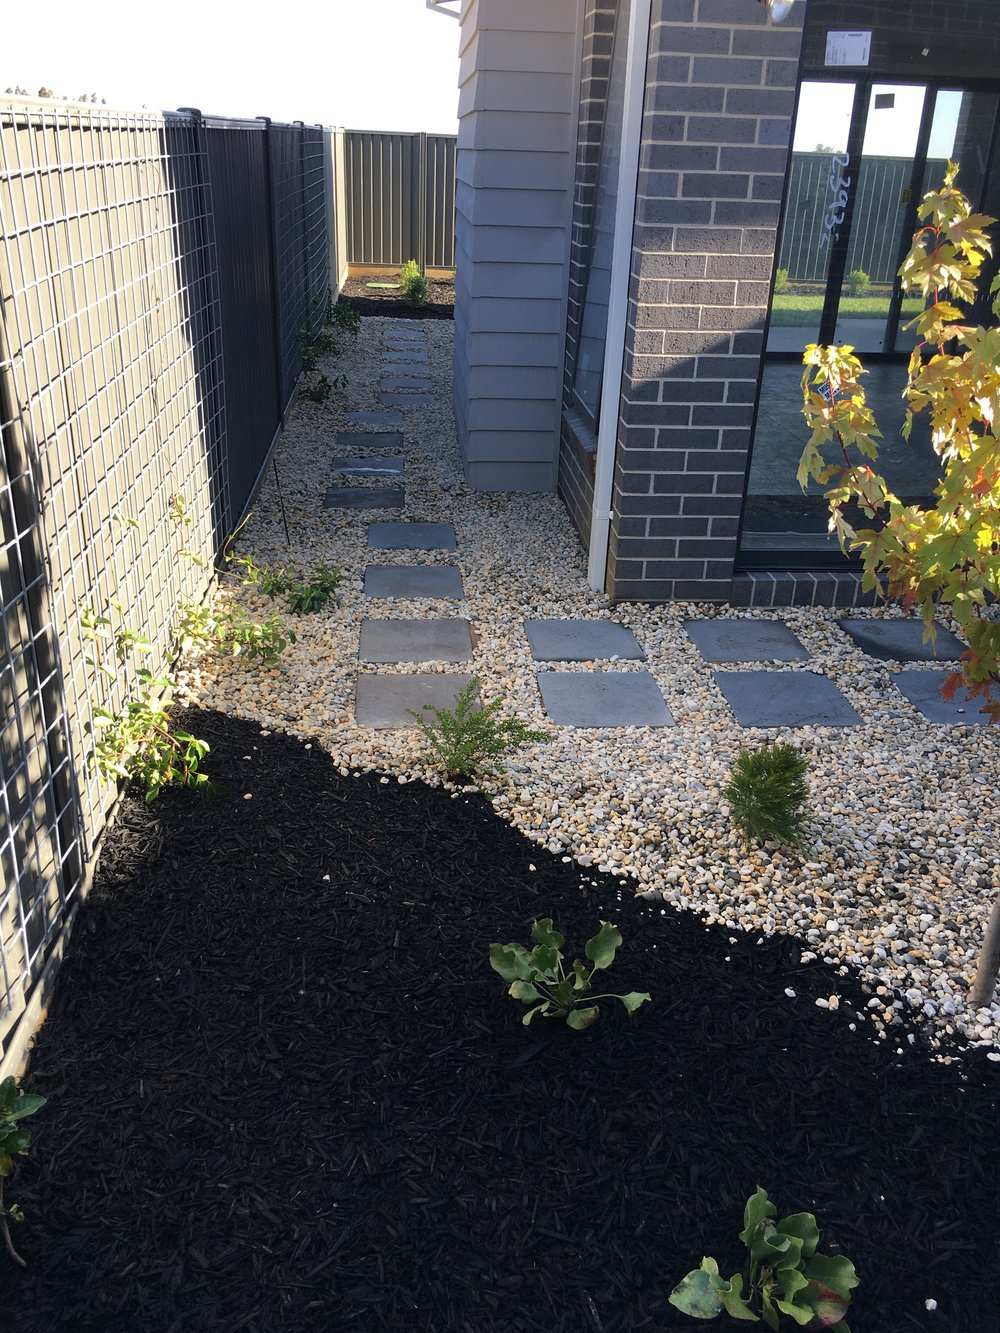 Garden bed with black mulch and pebble mulch with stepping pavers